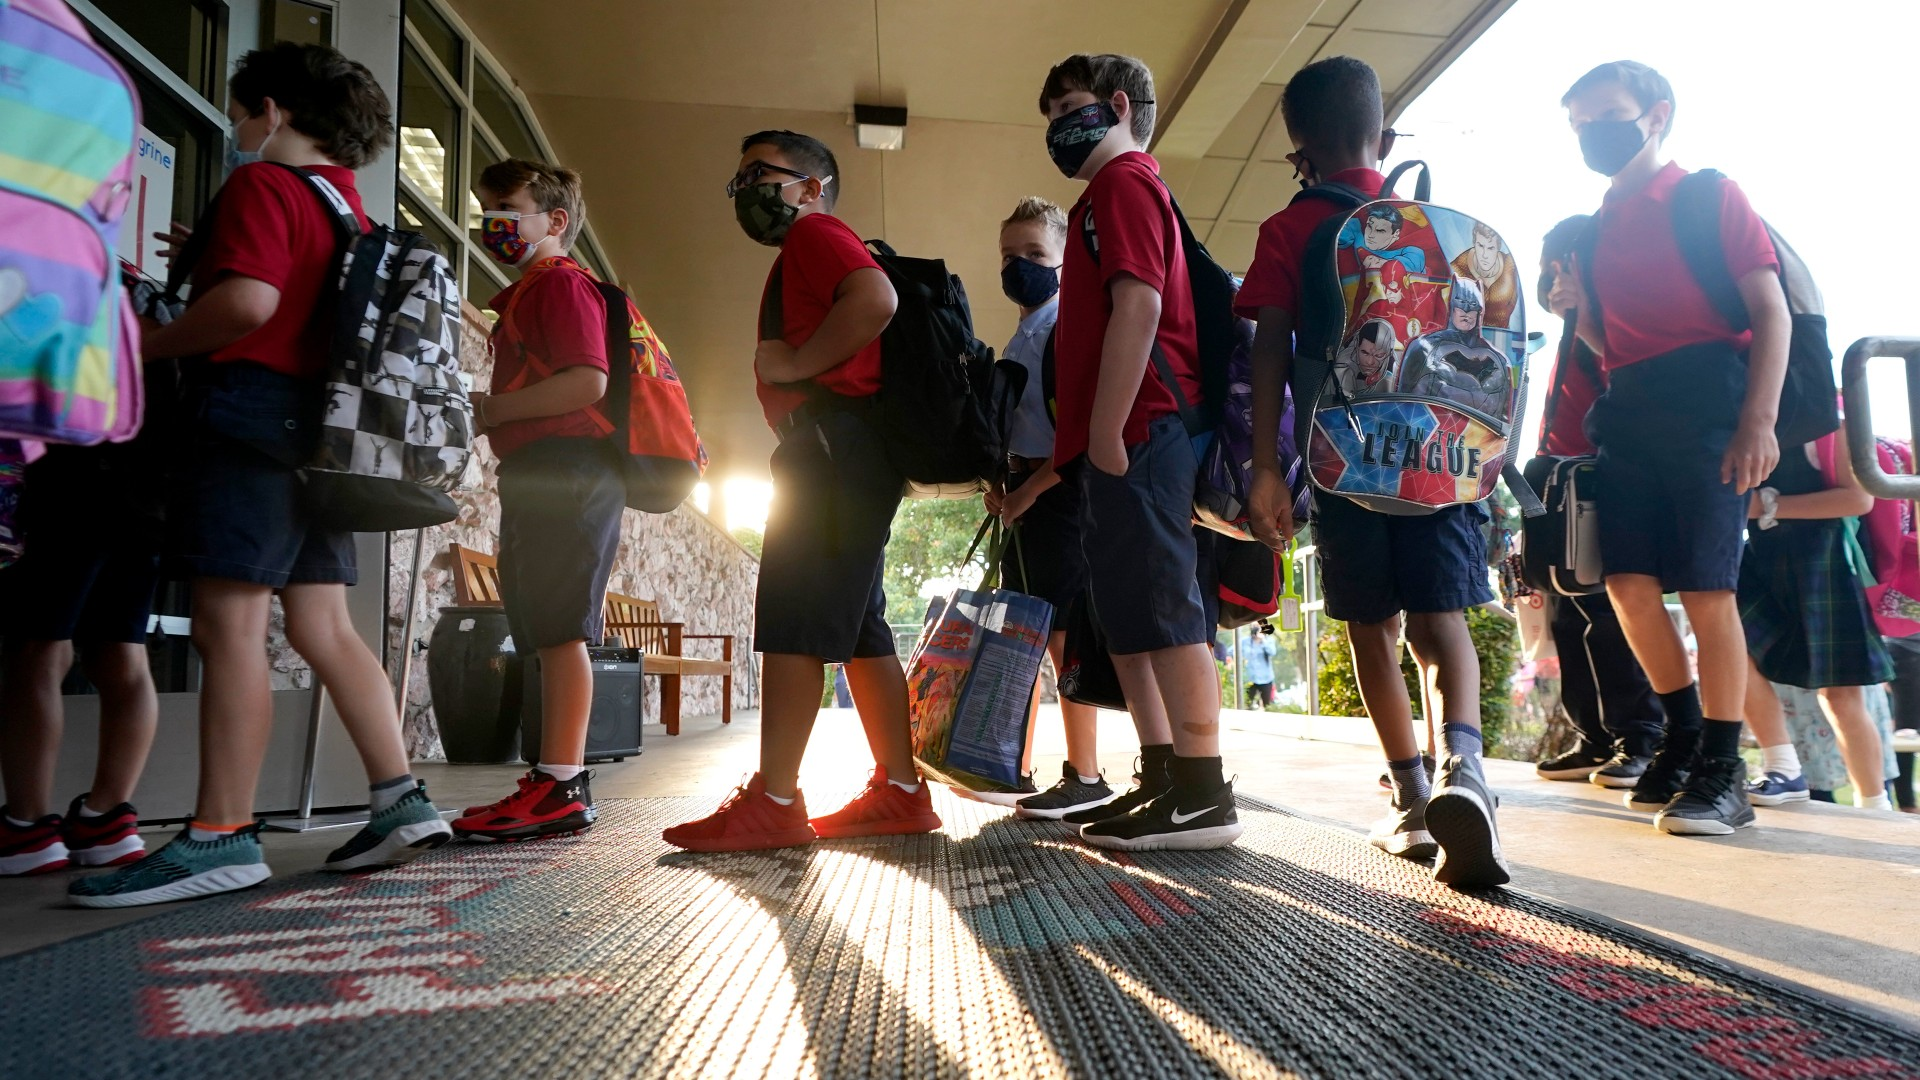 In this Aug. 17, 2021, file photo, wearing masks to prevent the spread of COVID-19, elementary school students line up to enter school for the first day of classes in Richardson, Texas. As COVID-19 cases surge, a majority of Americans say they support mask mandates for students and teachers in K-12 schools, but their views are sharply divided along political lines. (AP Photo/LM Otero, File)